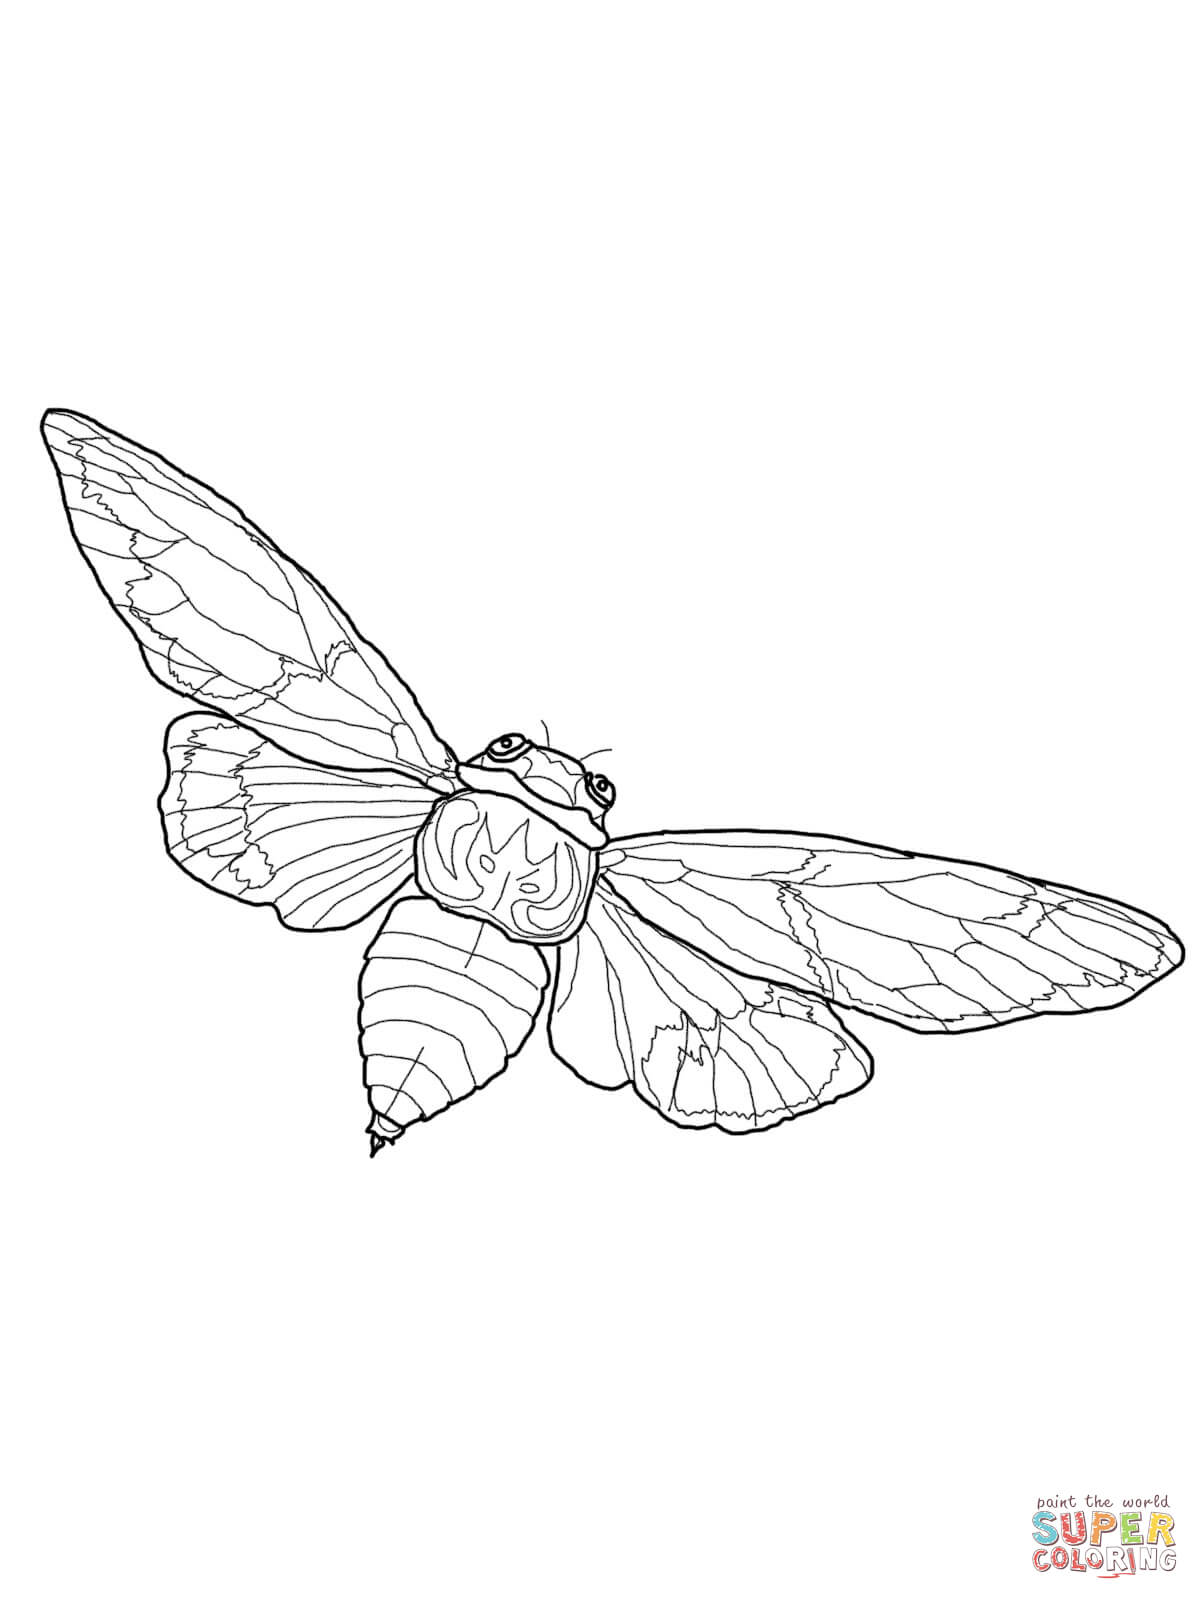 Cicada coloring #2, Download drawings